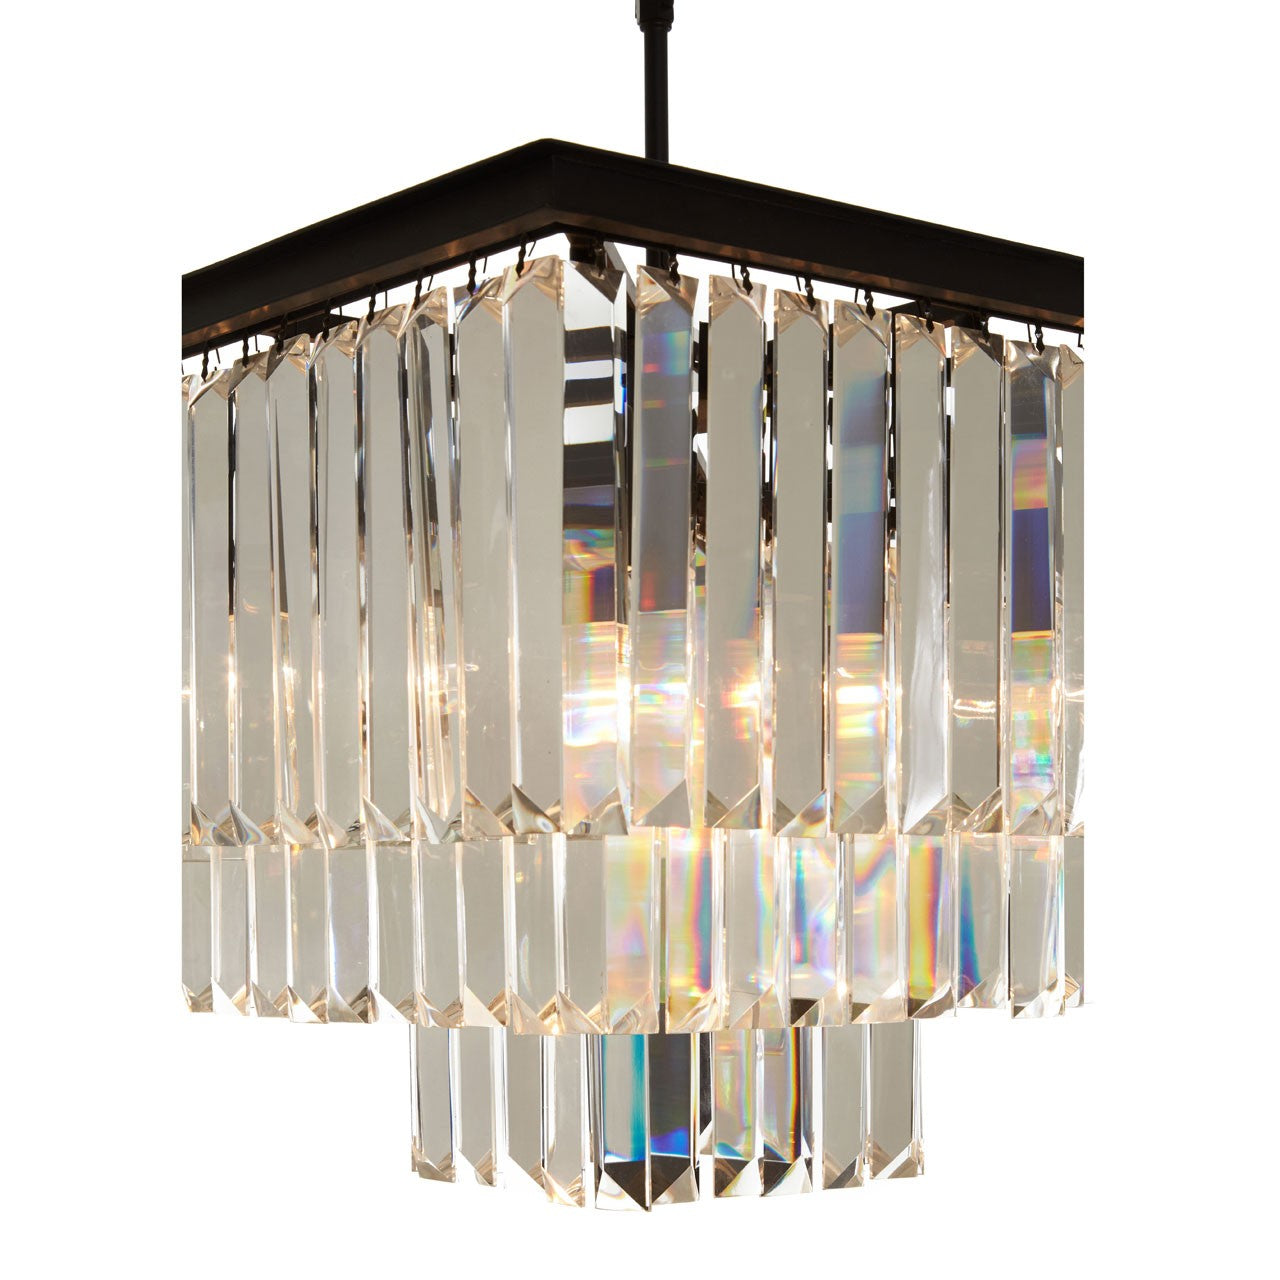 Kensington Townhouse Tiered Pendant